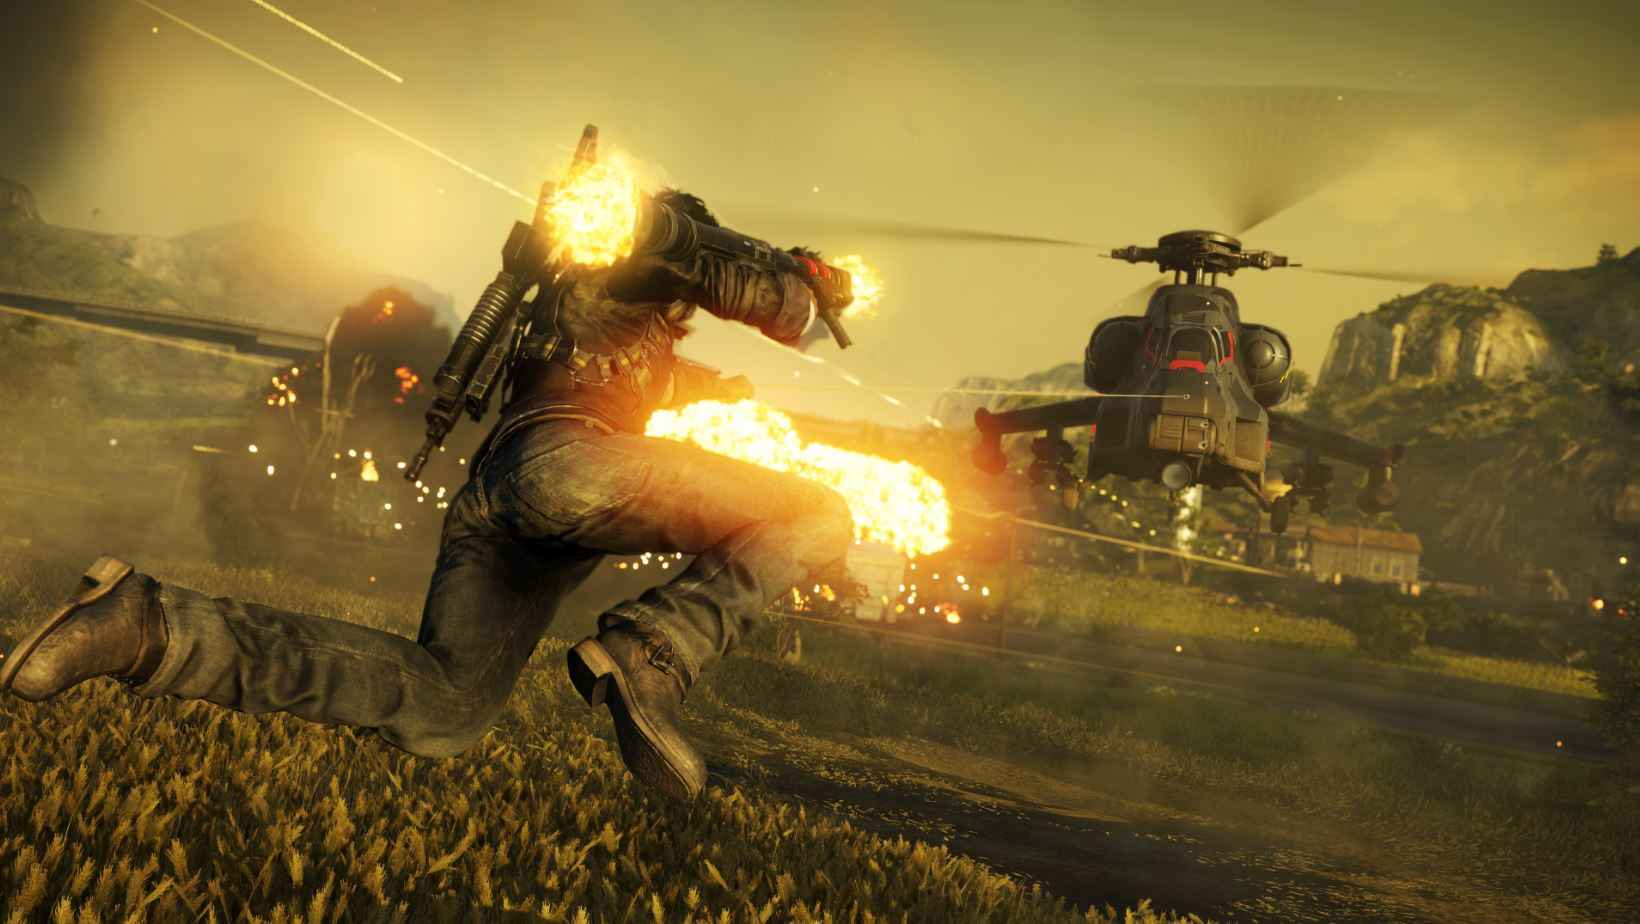 The classic grapple is back in Just Cause 4.